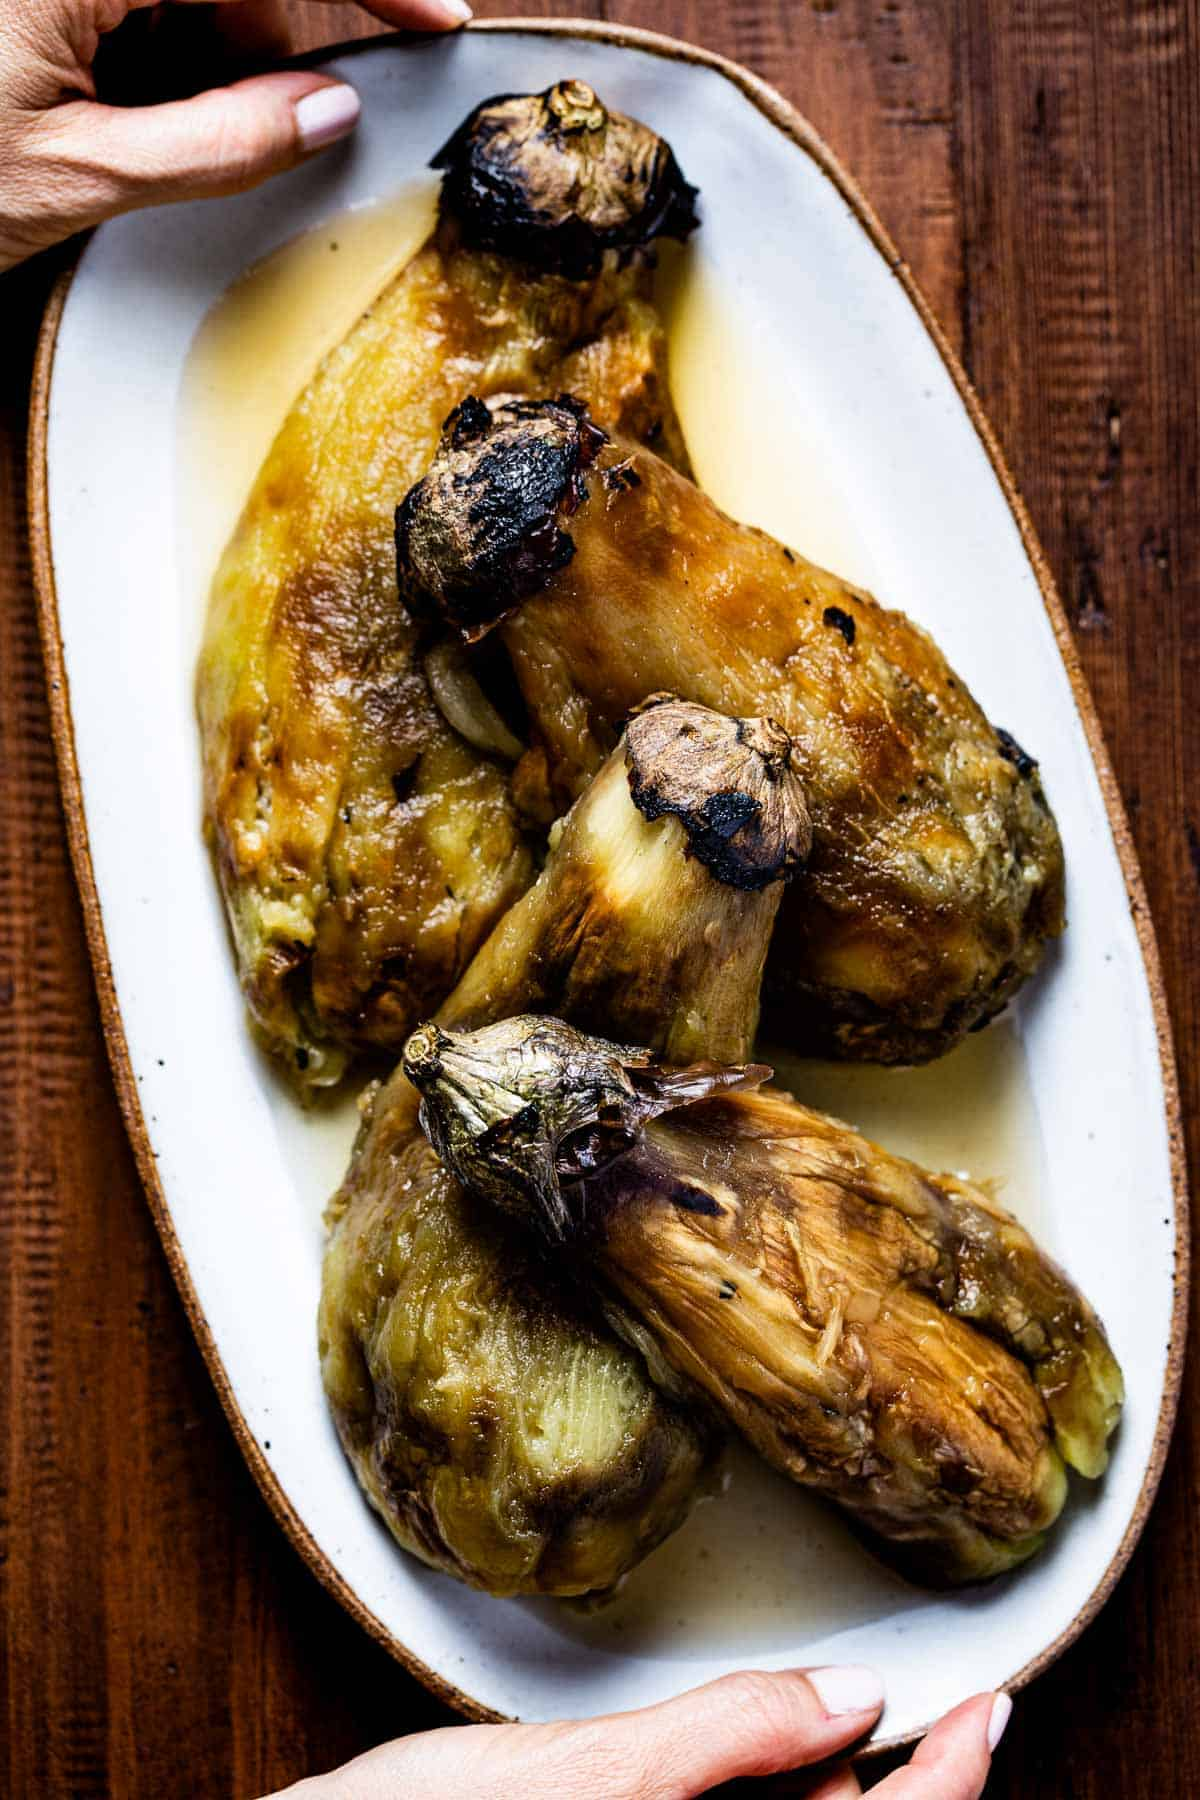 Fire roasted eggplants on a plate served by a person